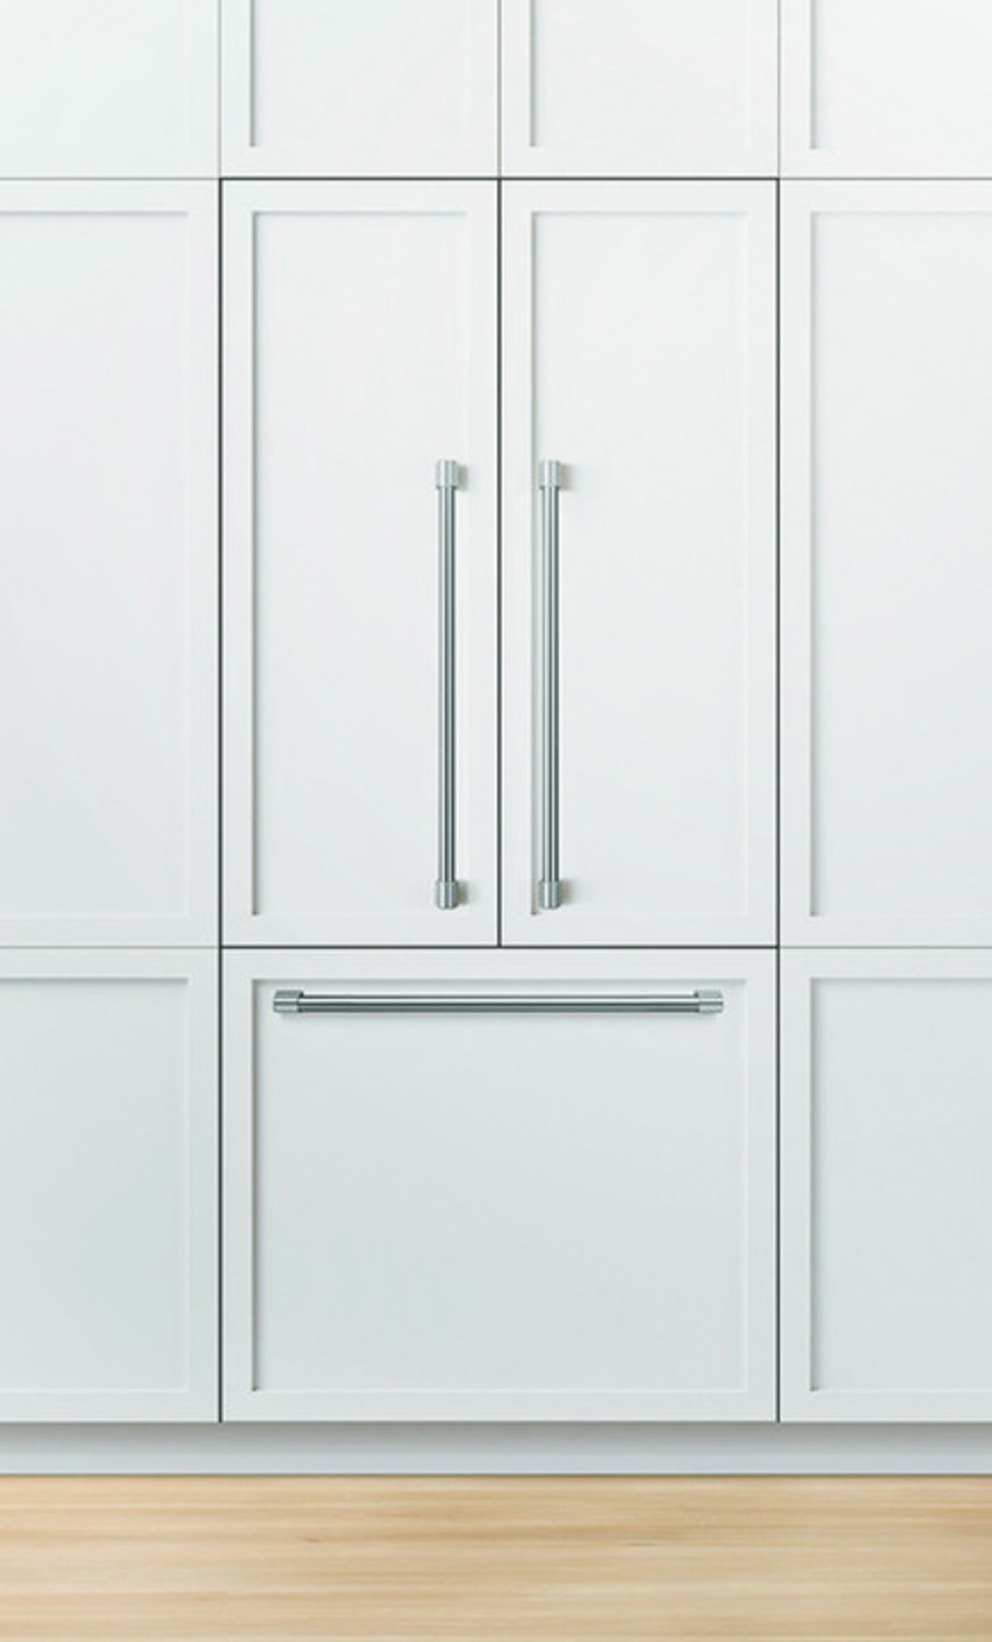 Fridges DCS RS36A80JC1 (84'' DCS)